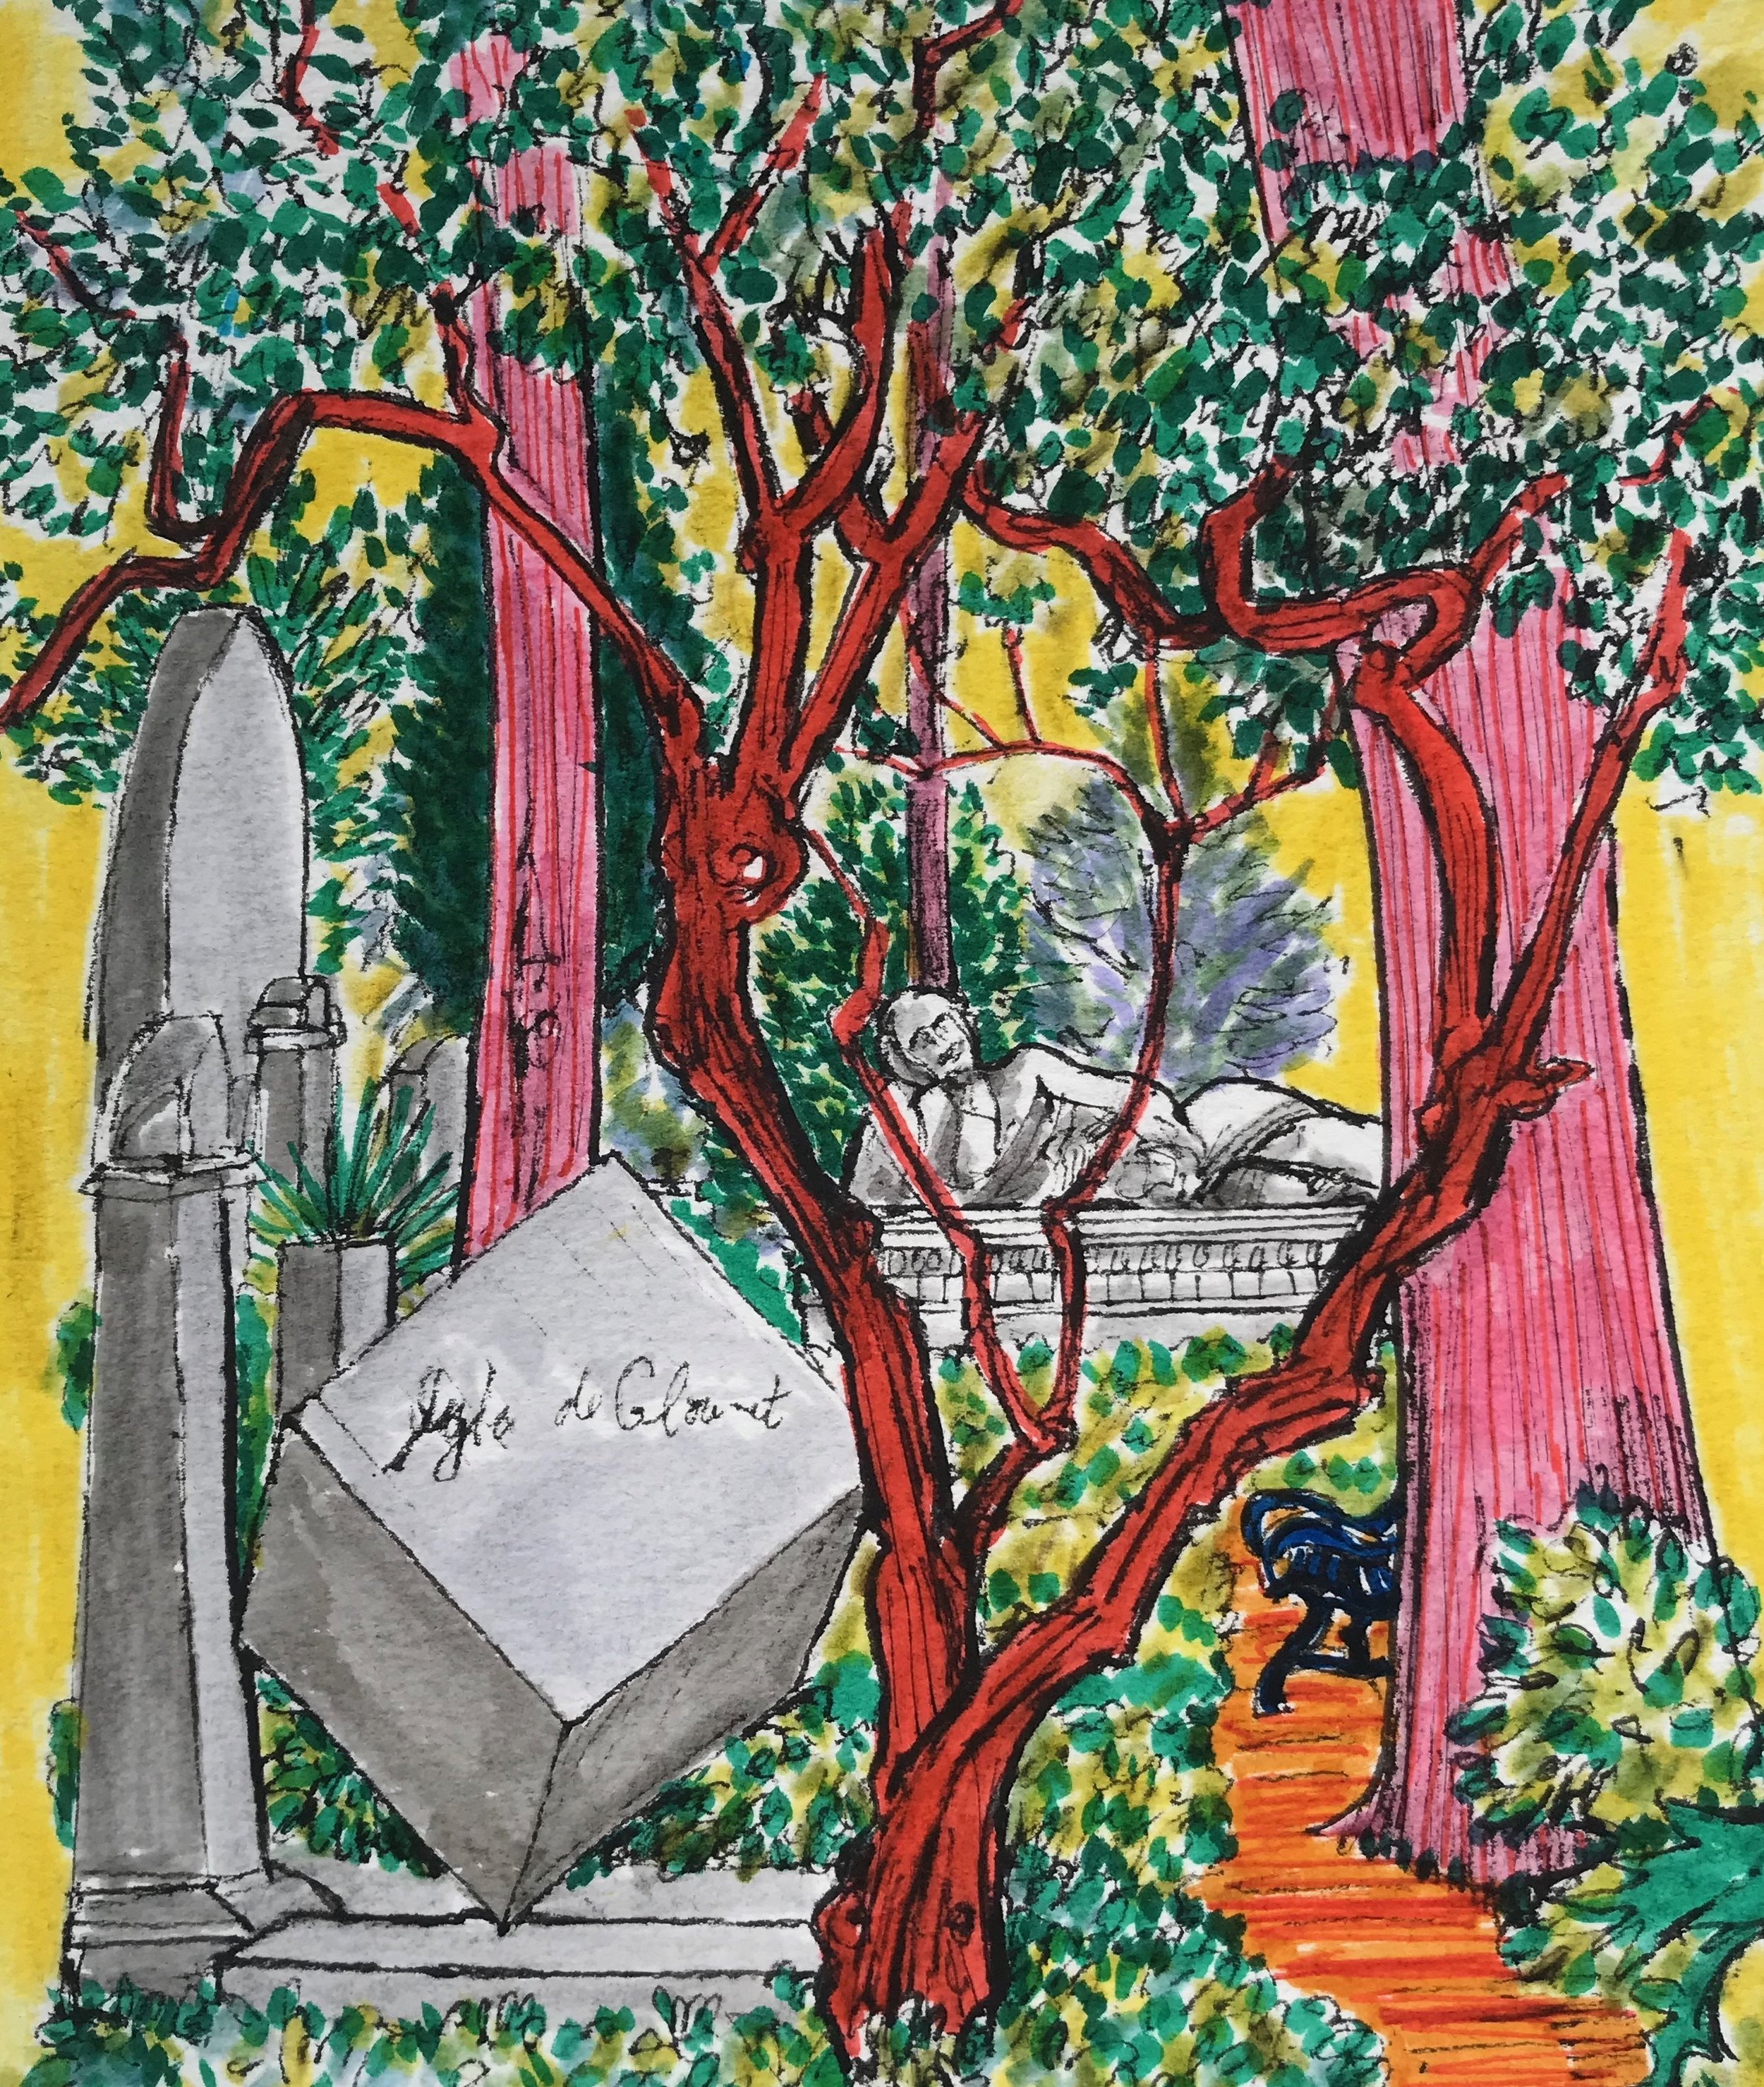 The Cube Non Catholic Cemetery of Rome. (watercolour, pen and ink) 43 x 40cm £70 framed